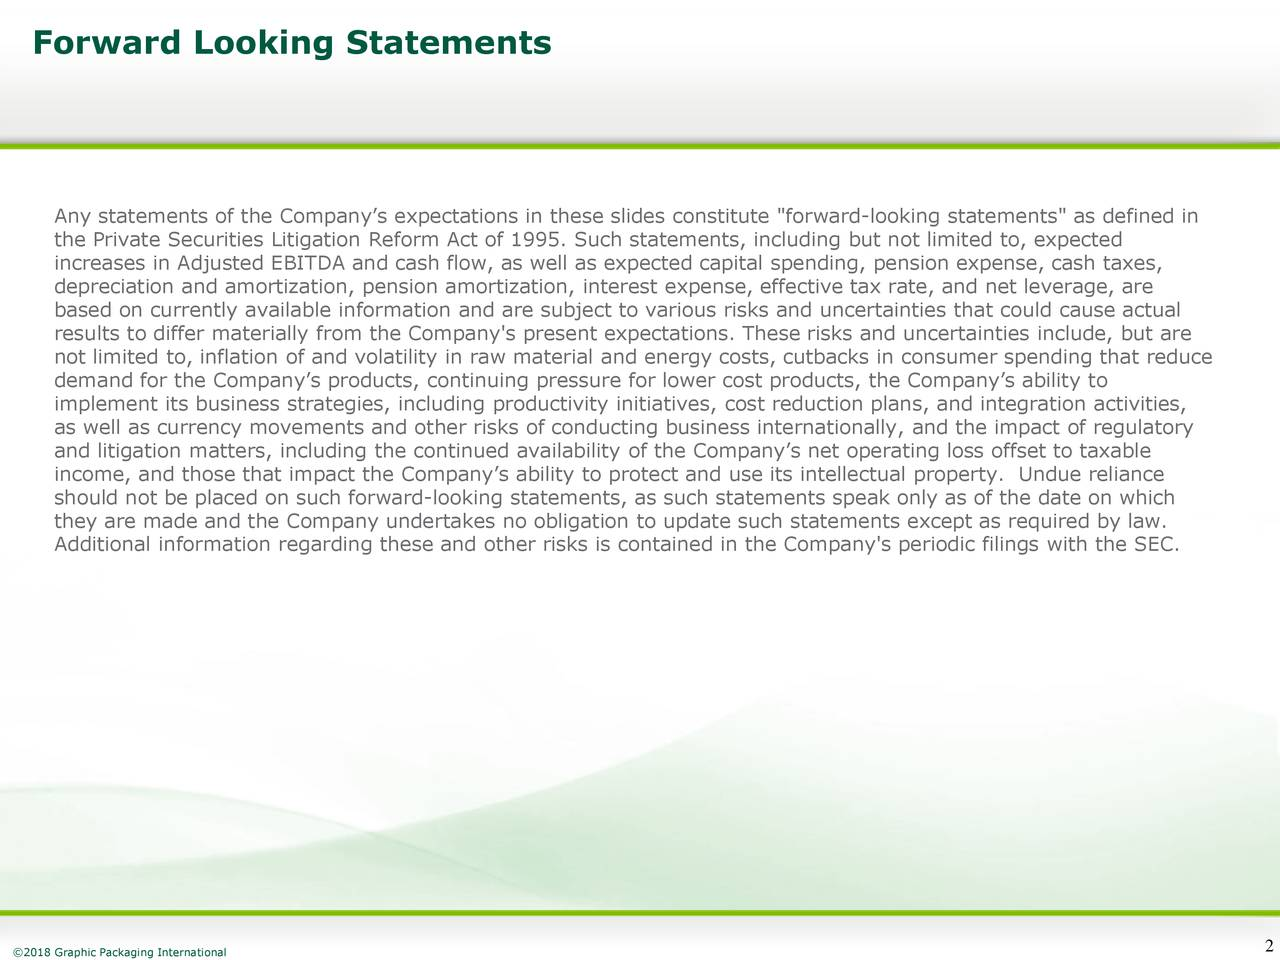 """Any statements of the Company's expectations in these slides constitute """"forward-looking statements"""" as defined in the Private Securities Litigation Reform Act of 1995. Such statements, including but not limited to, expected increases in Adjusted EBITDA and cash flow, as well as expected capital spending, pension expense, cash taxes, depreciation and amortization, pension amortization, interest expense, effective tax rate, and net leverage, are based on currently available information and are subject to various risks and uncertainties that could cause actual results to differ materially from the Company's present expectations. These risks and uncertainties include, but are not limited to, inflation of and volatility in raw material and energy costs, cutbacks in consumer spending that reduce demand for the Company's products, continuing pressure for lower cost products, the Company's ability to implement its business strategies, including productivity initiatives, cost reduction plans, and integration activities, as well as currency movements and other risks of conducting business internationally, and the impact of regulatory and litigation matters, including the continued availability of the Company's net operating loss offset to taxable income, and those that impact the Company's ability to protect and use its intellectual property. Undue reliance should not be placed on such forward-looking statements, as such statements speak only as of the date on which they are made and the Company undertakes no obligation to update such statements except as required by law. Additional information regarding these and other risks is contained in the Company's periodic filings with the SEC."""